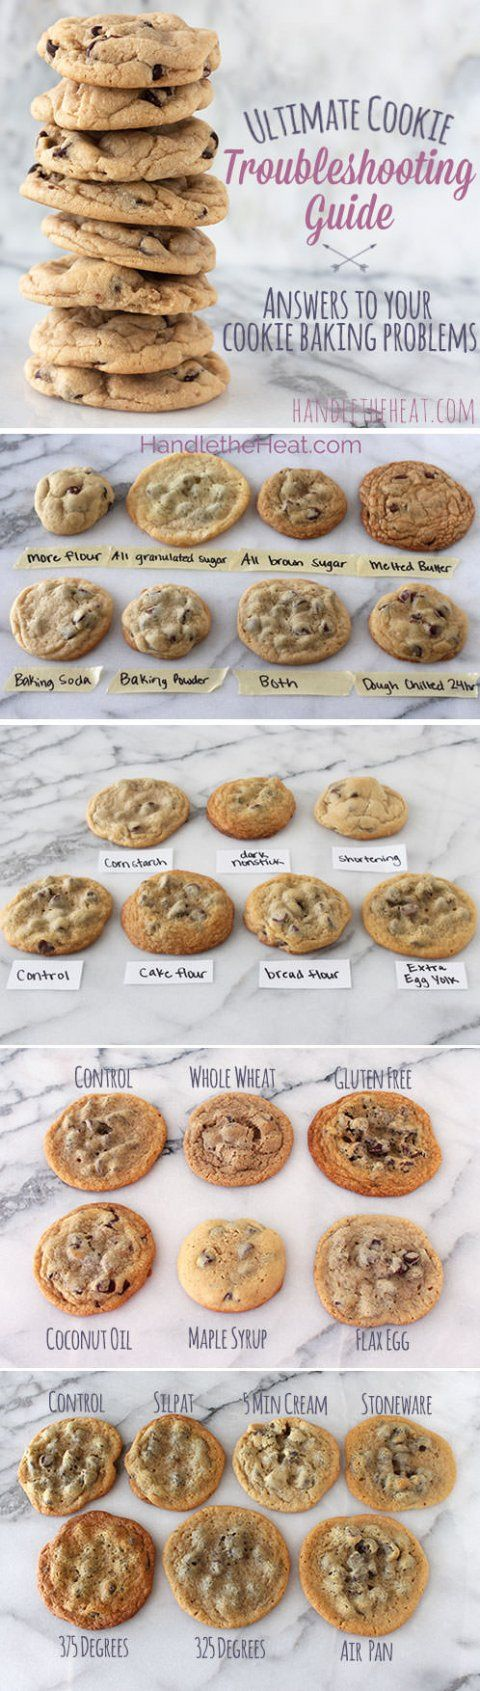 Ultimate Cookie Troubleshooting Guide to find out why your cookies are too thin, thick, crumbly, or how to make them chewy, soft, crispy, etc. Answering ALL your cookie problems!